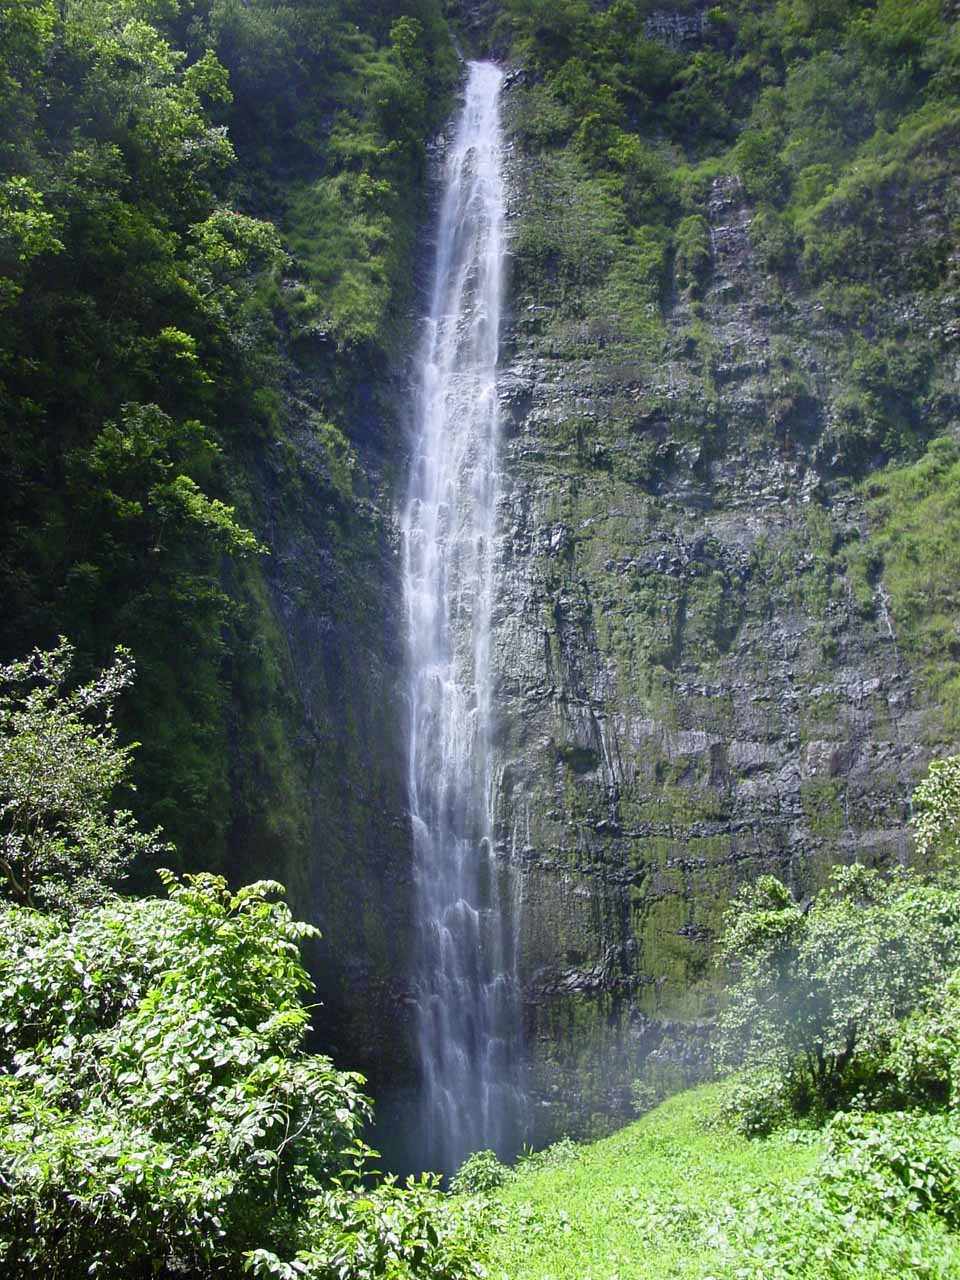 Our first full view of Waimoku Falls back in September 2003